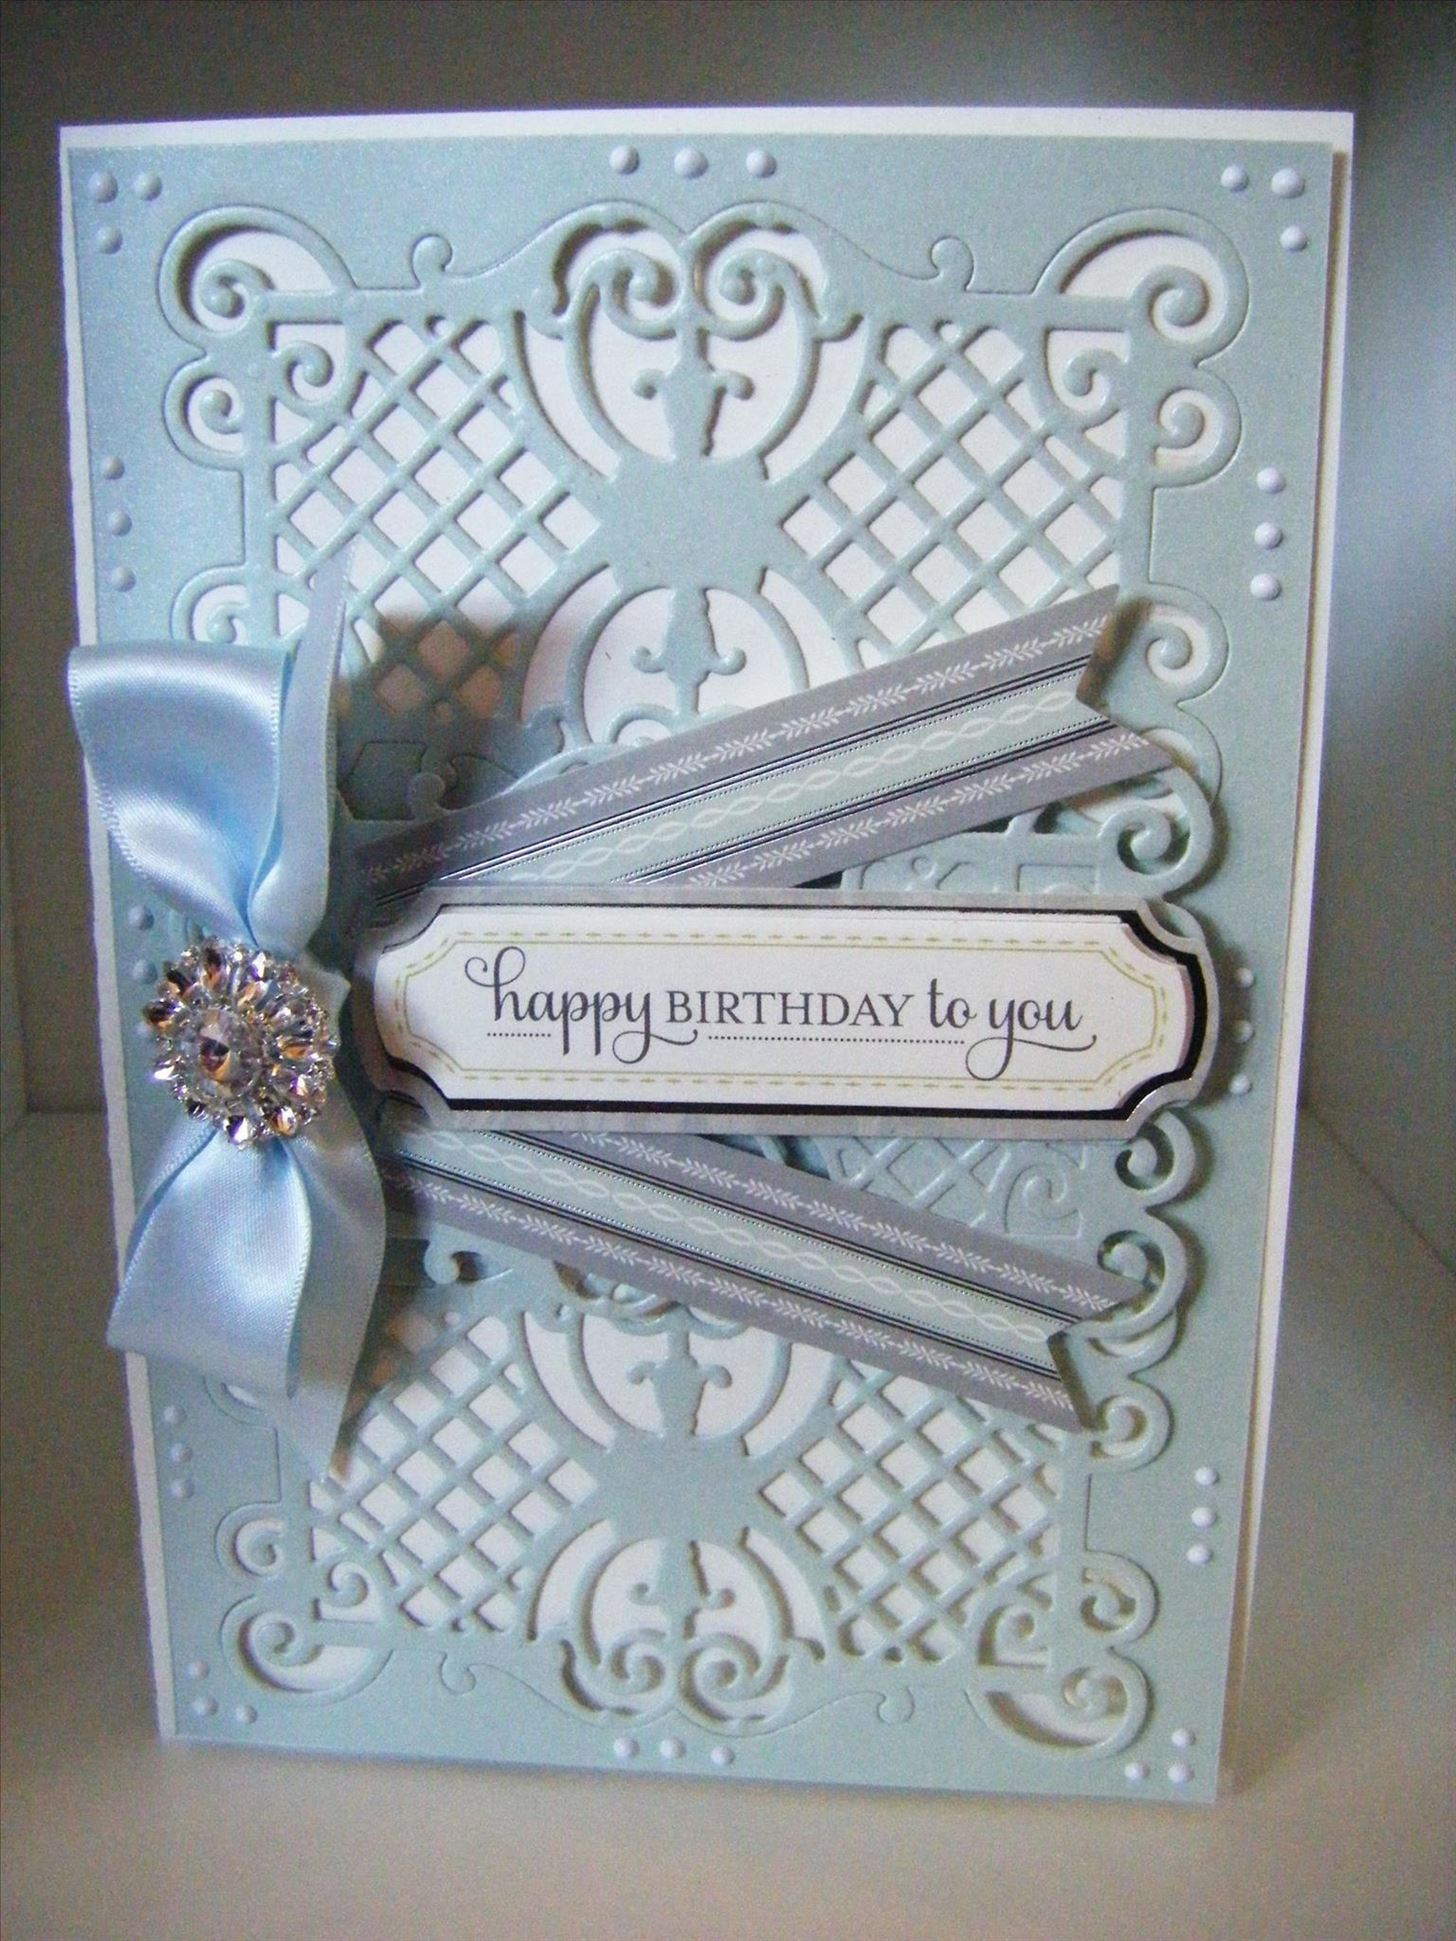 How to Make Double Ornate Fretwork Card